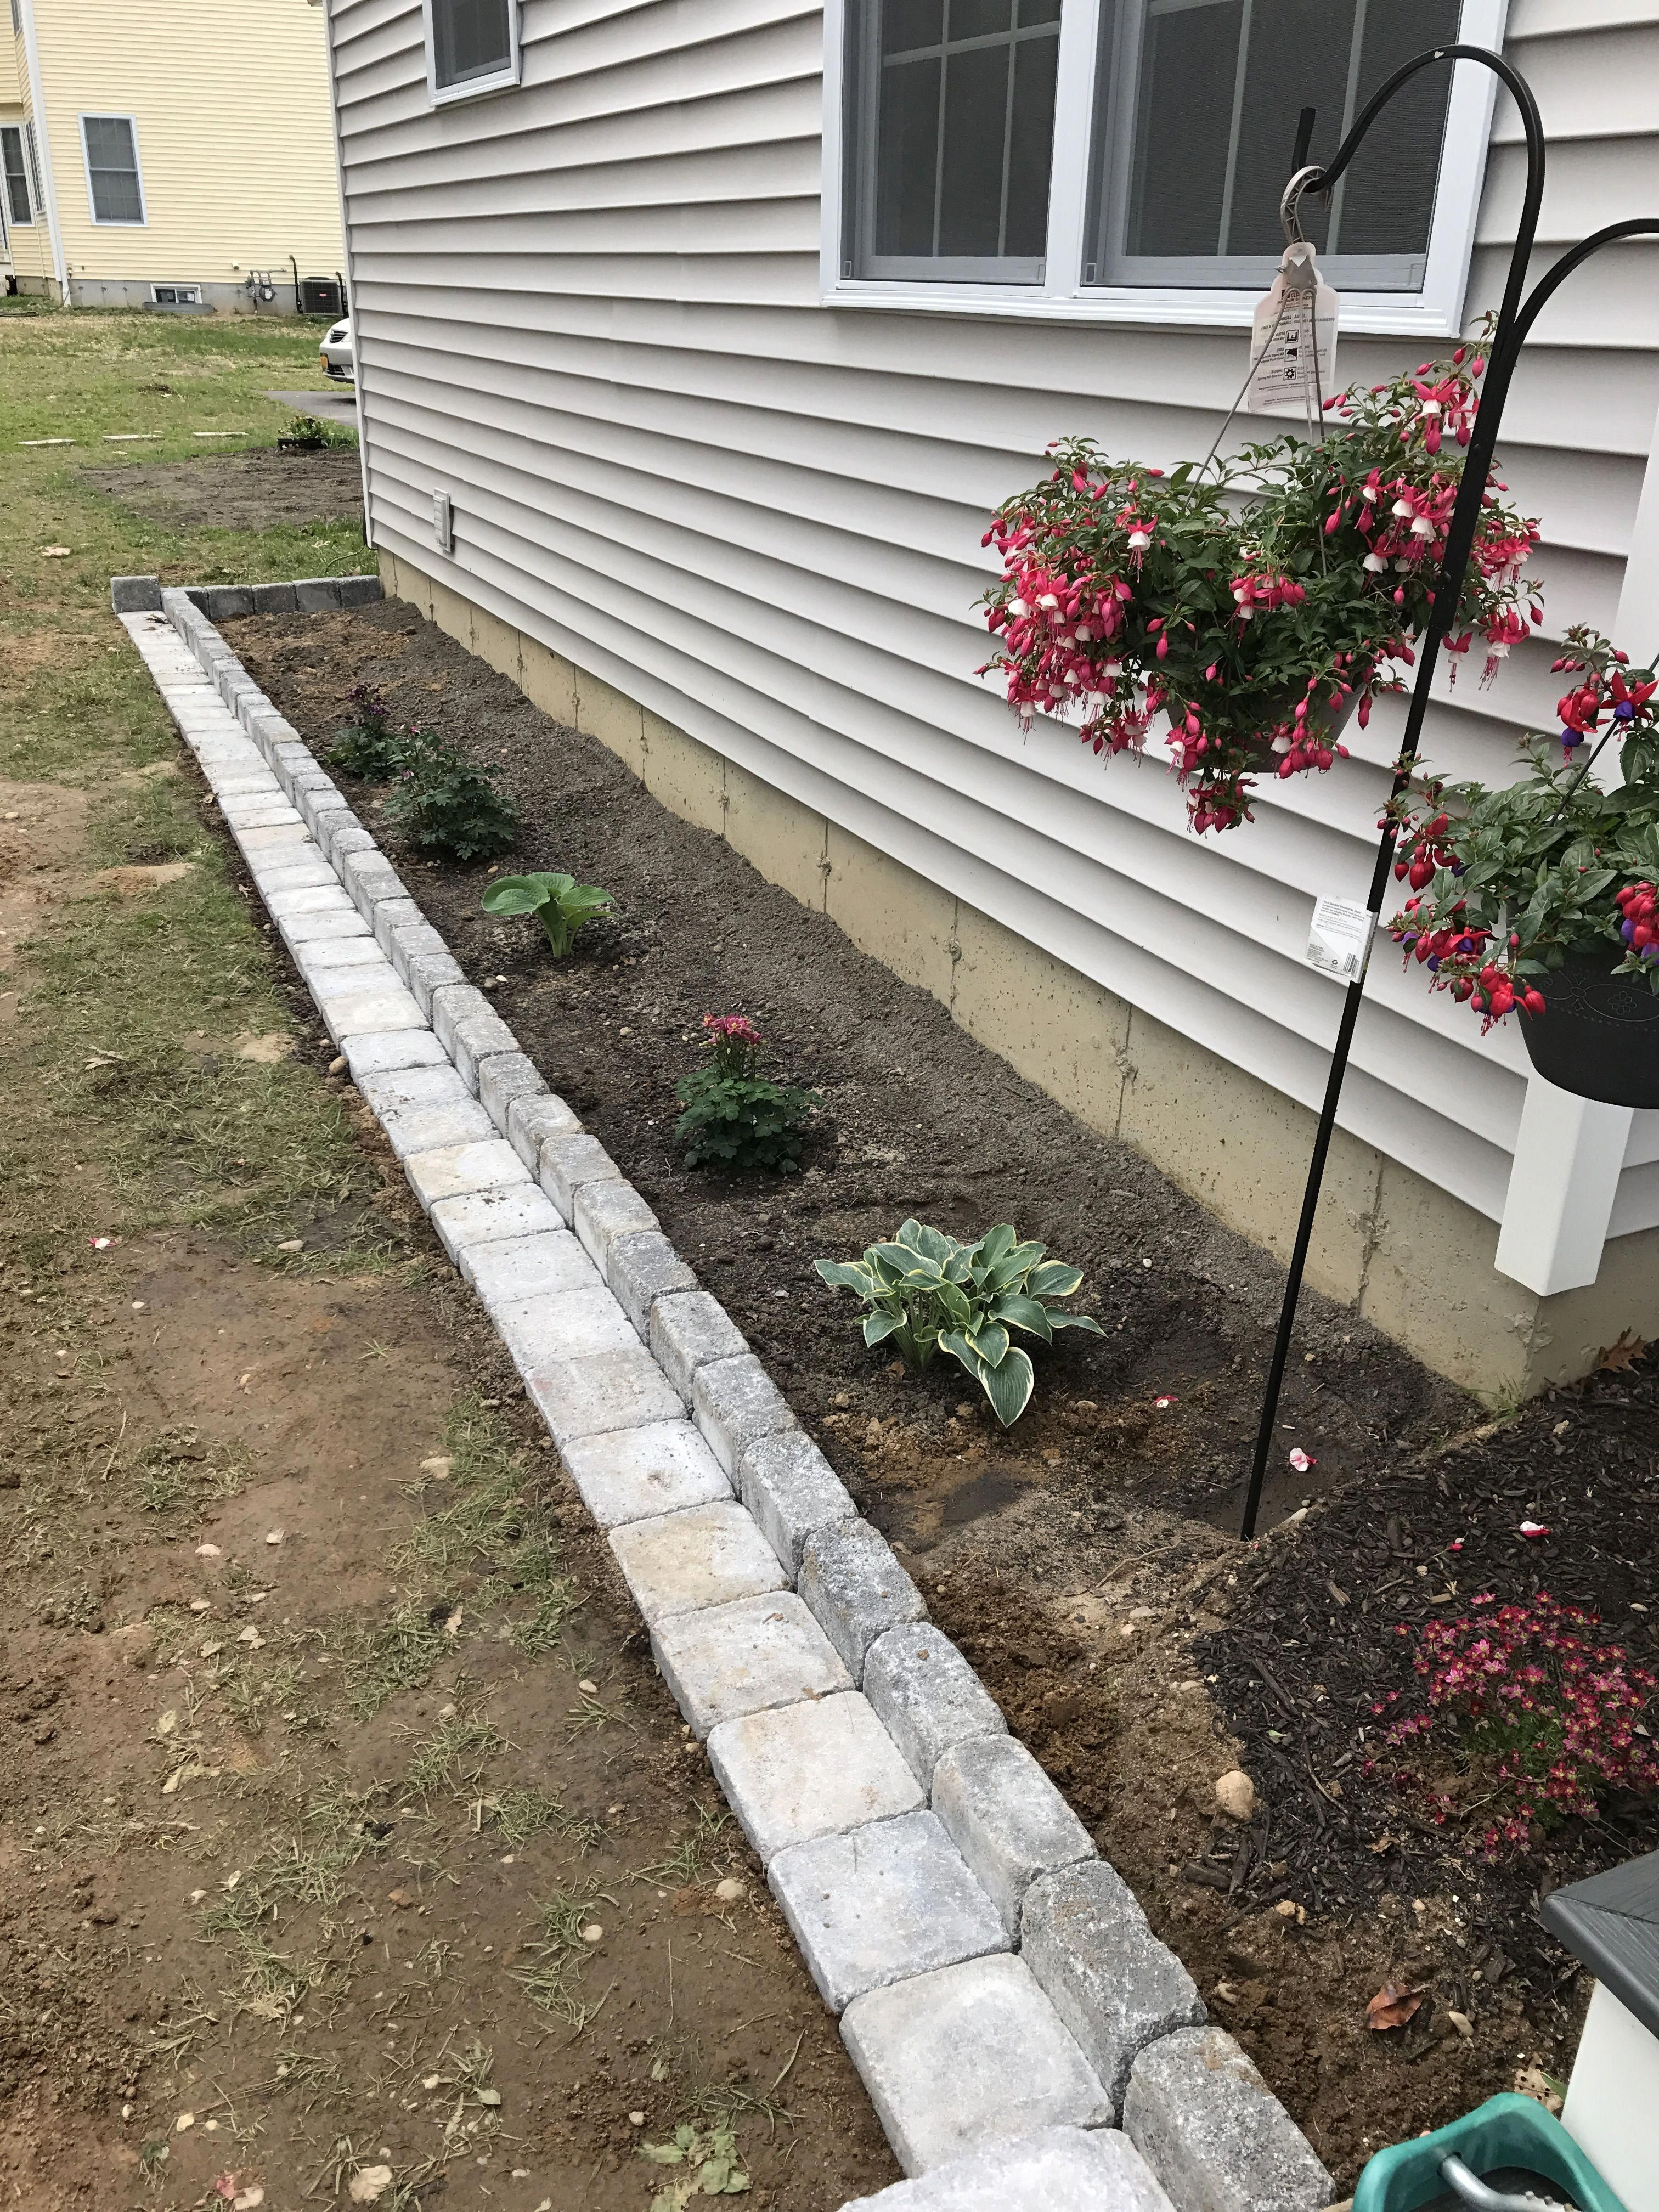 Backyard landscaping. This allows for easy mowing right up to the edge of the flower bed without needing to trim! Made with Rumblestones! #easyfrontyardlandscaping #flowerbeds